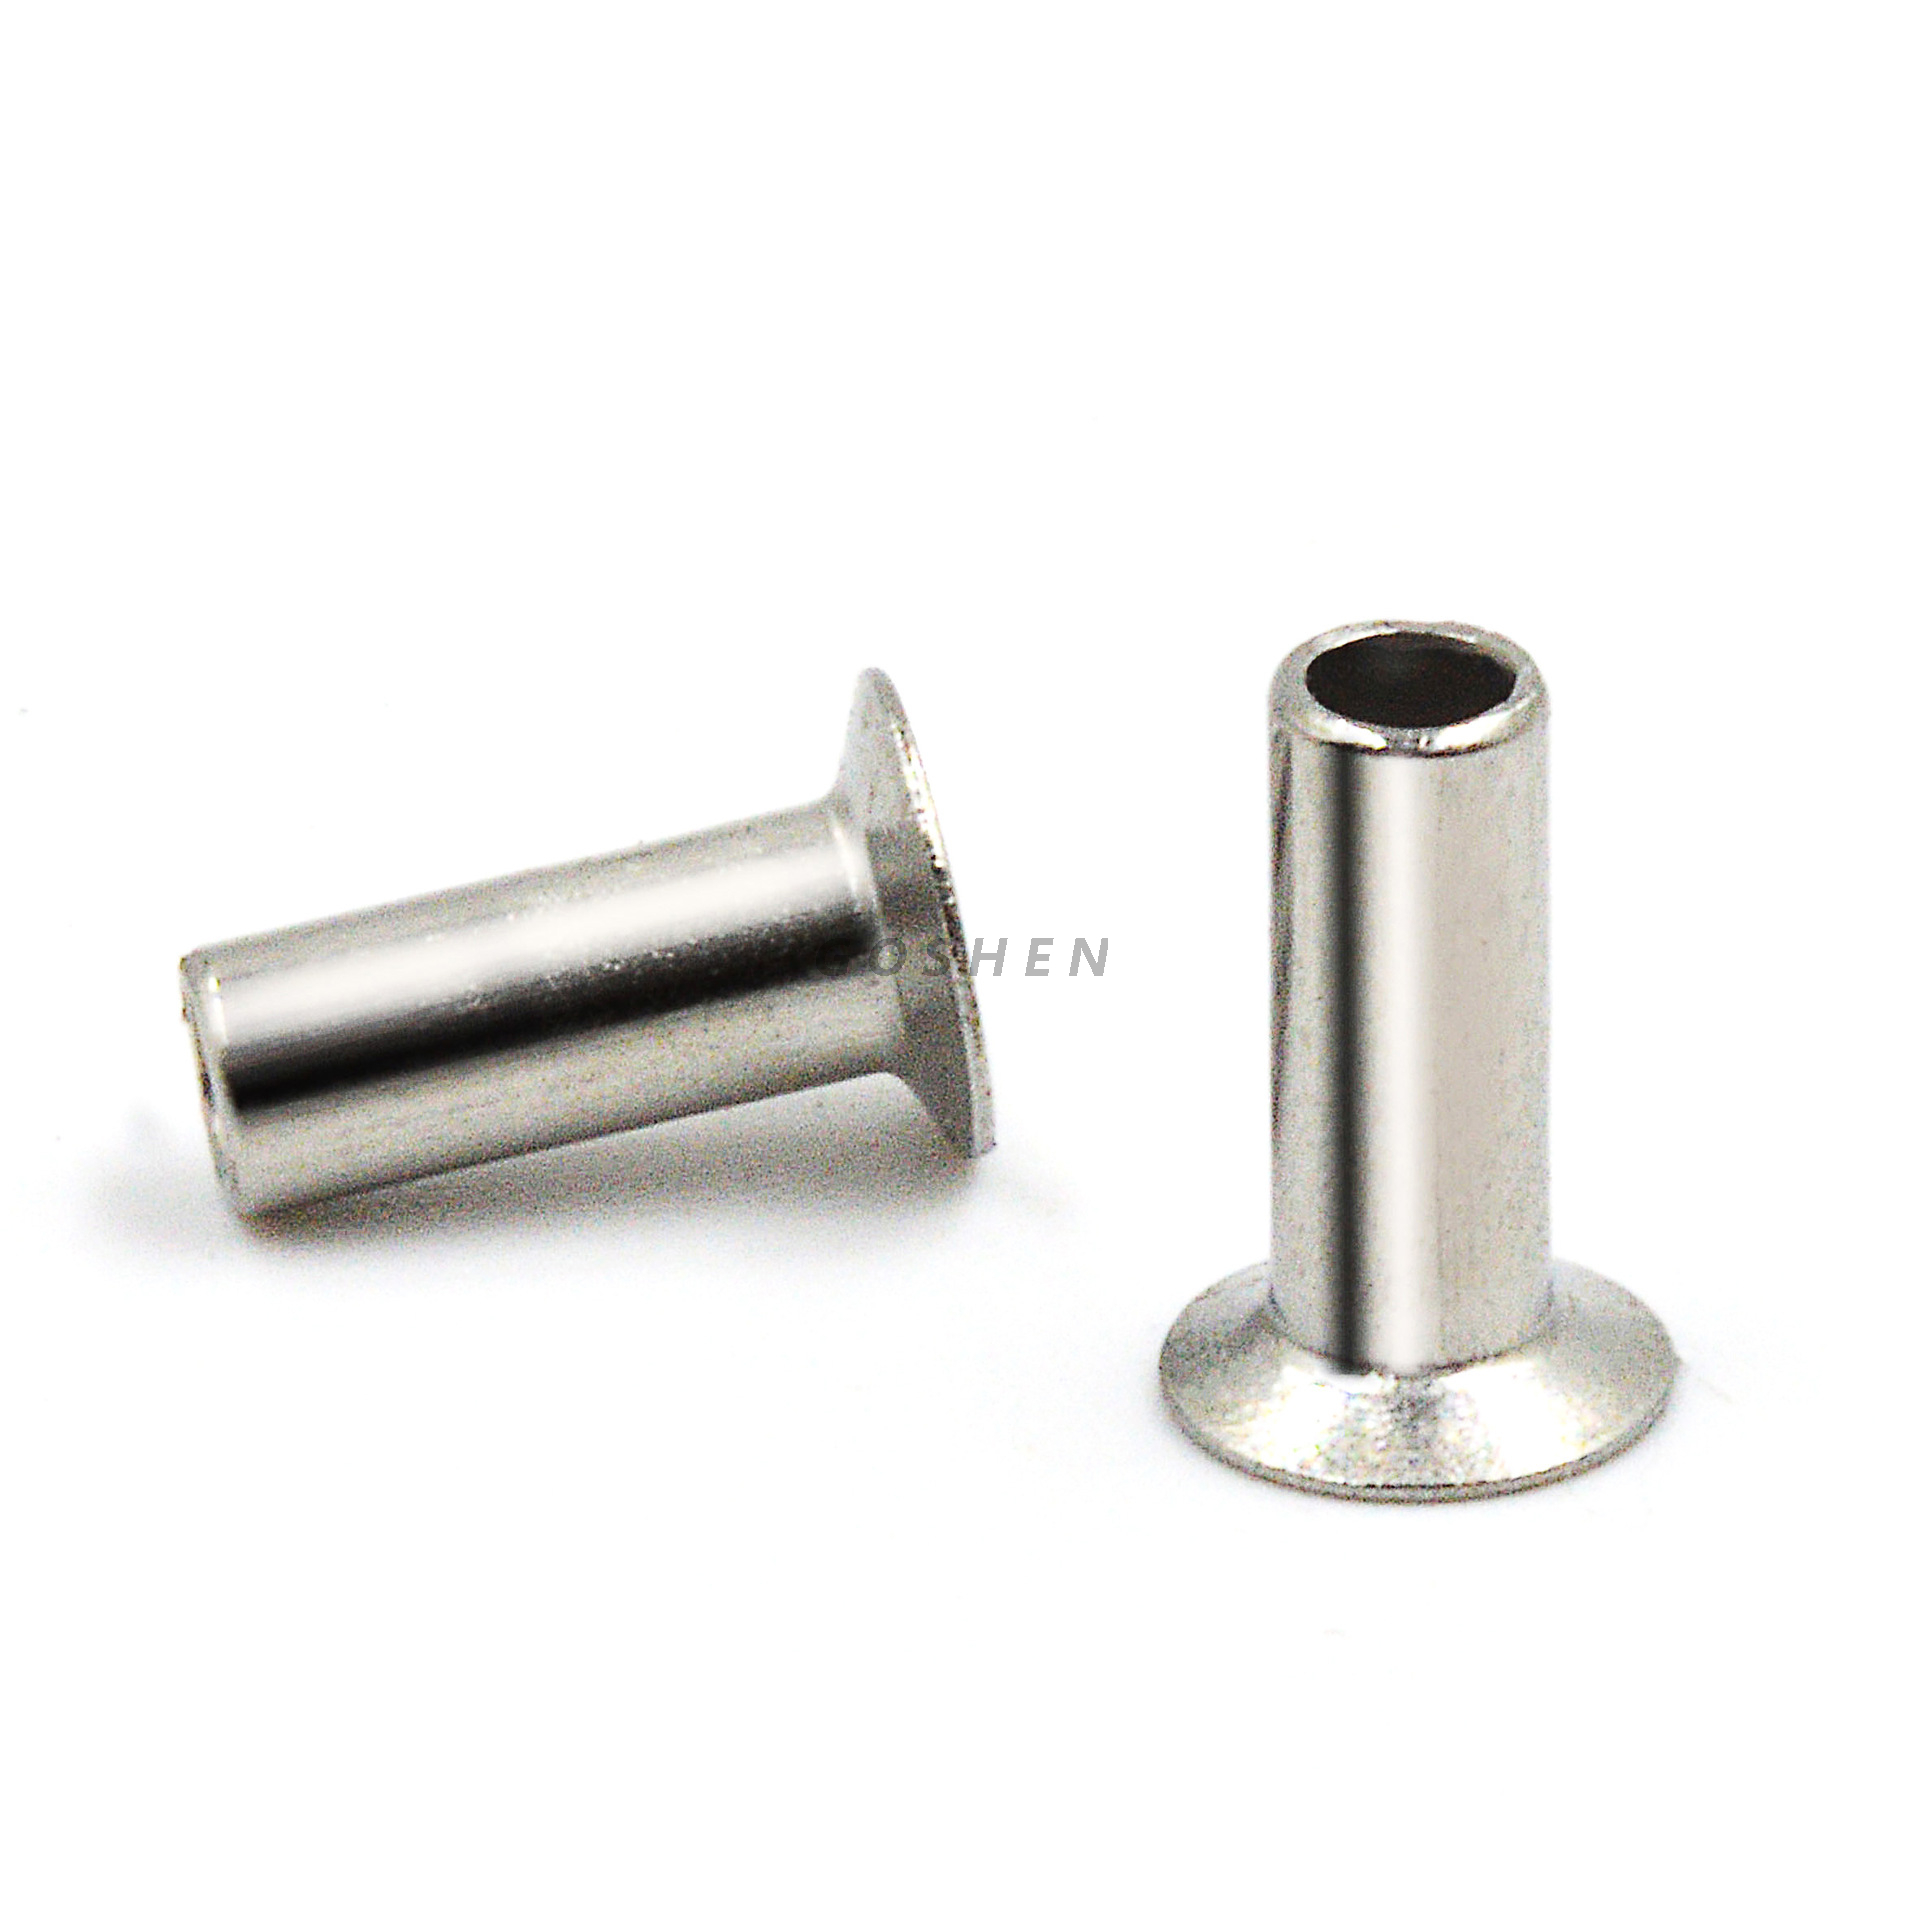 Stainless Steel 304 316 Φ2 Countersunk Head Semi-Tubular Rivets